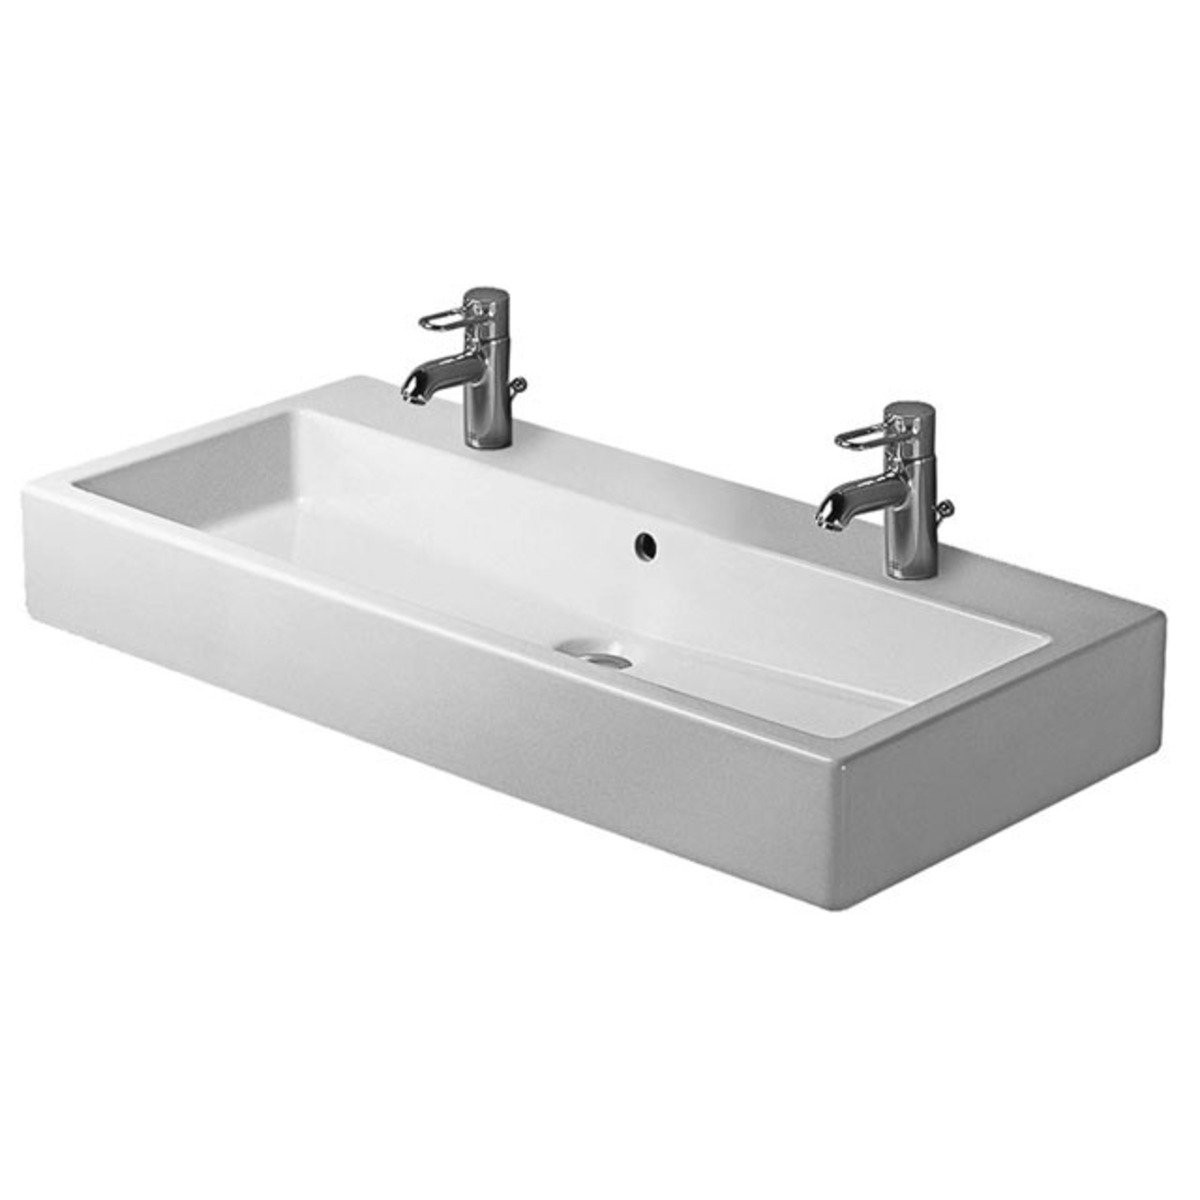 Vero Console Bathroom Sink Set